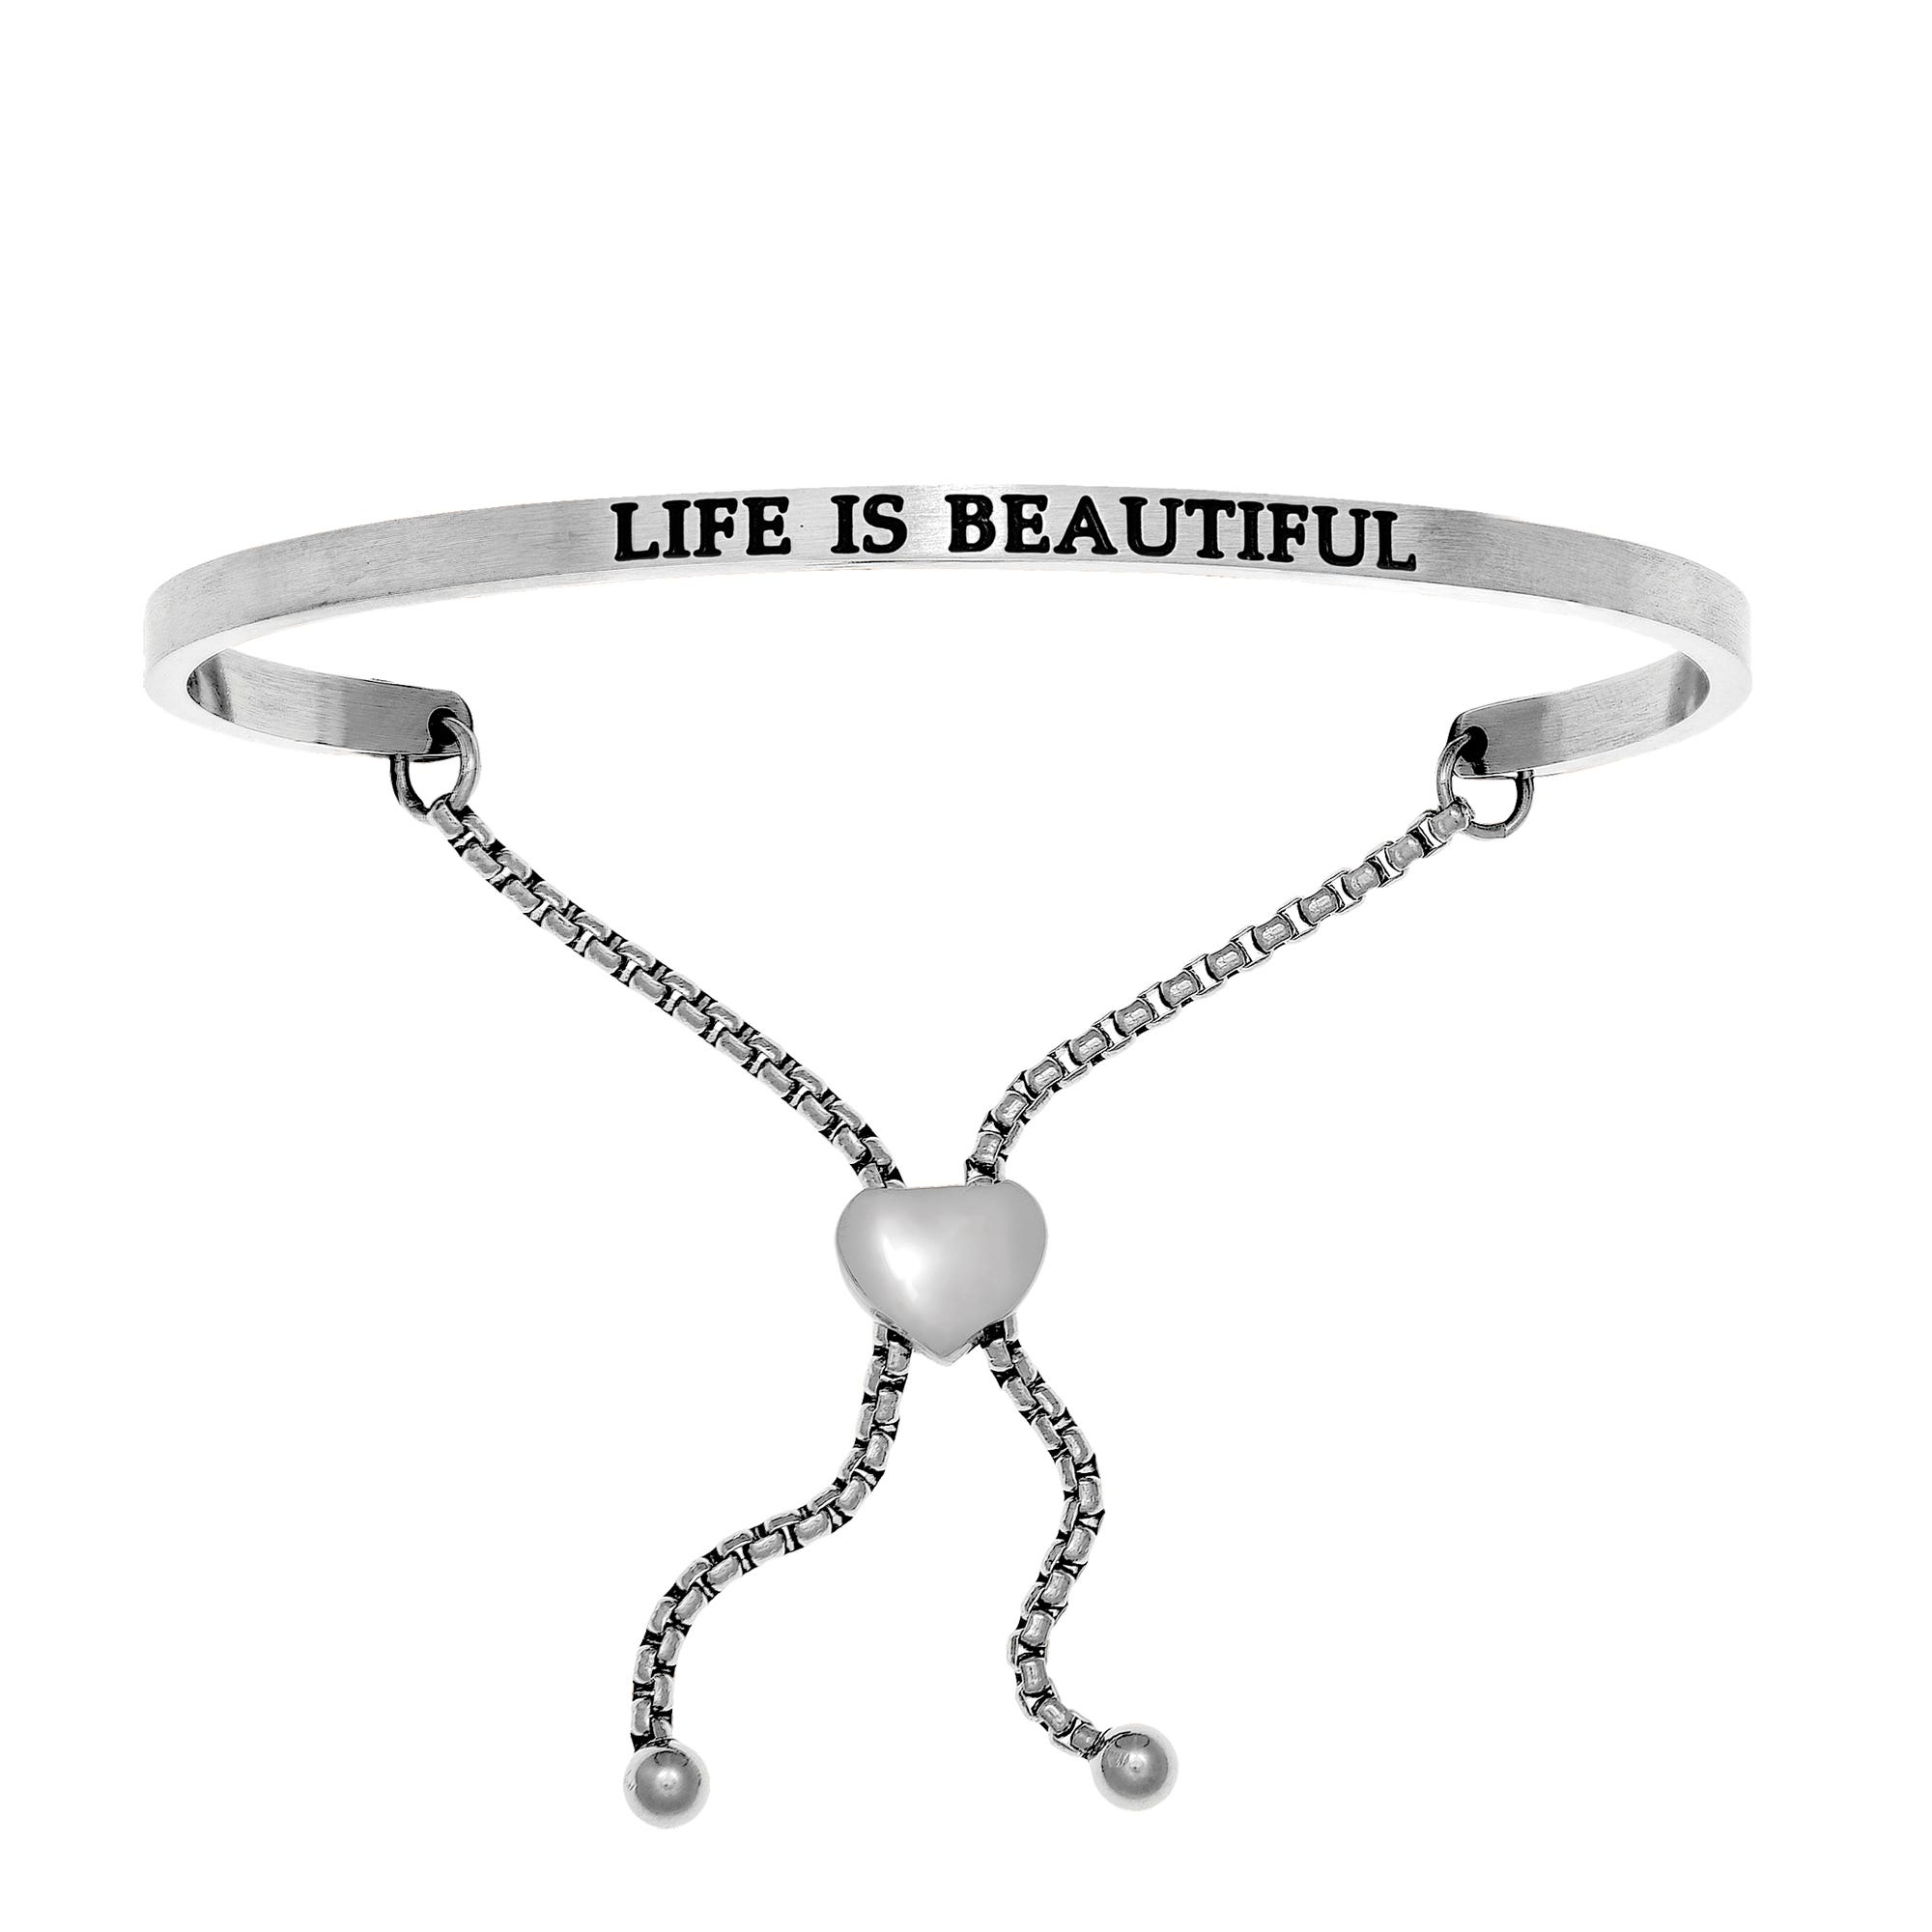 Life Is Beautiful. Intuitions Bolo Bracelet in White Stainless Steel